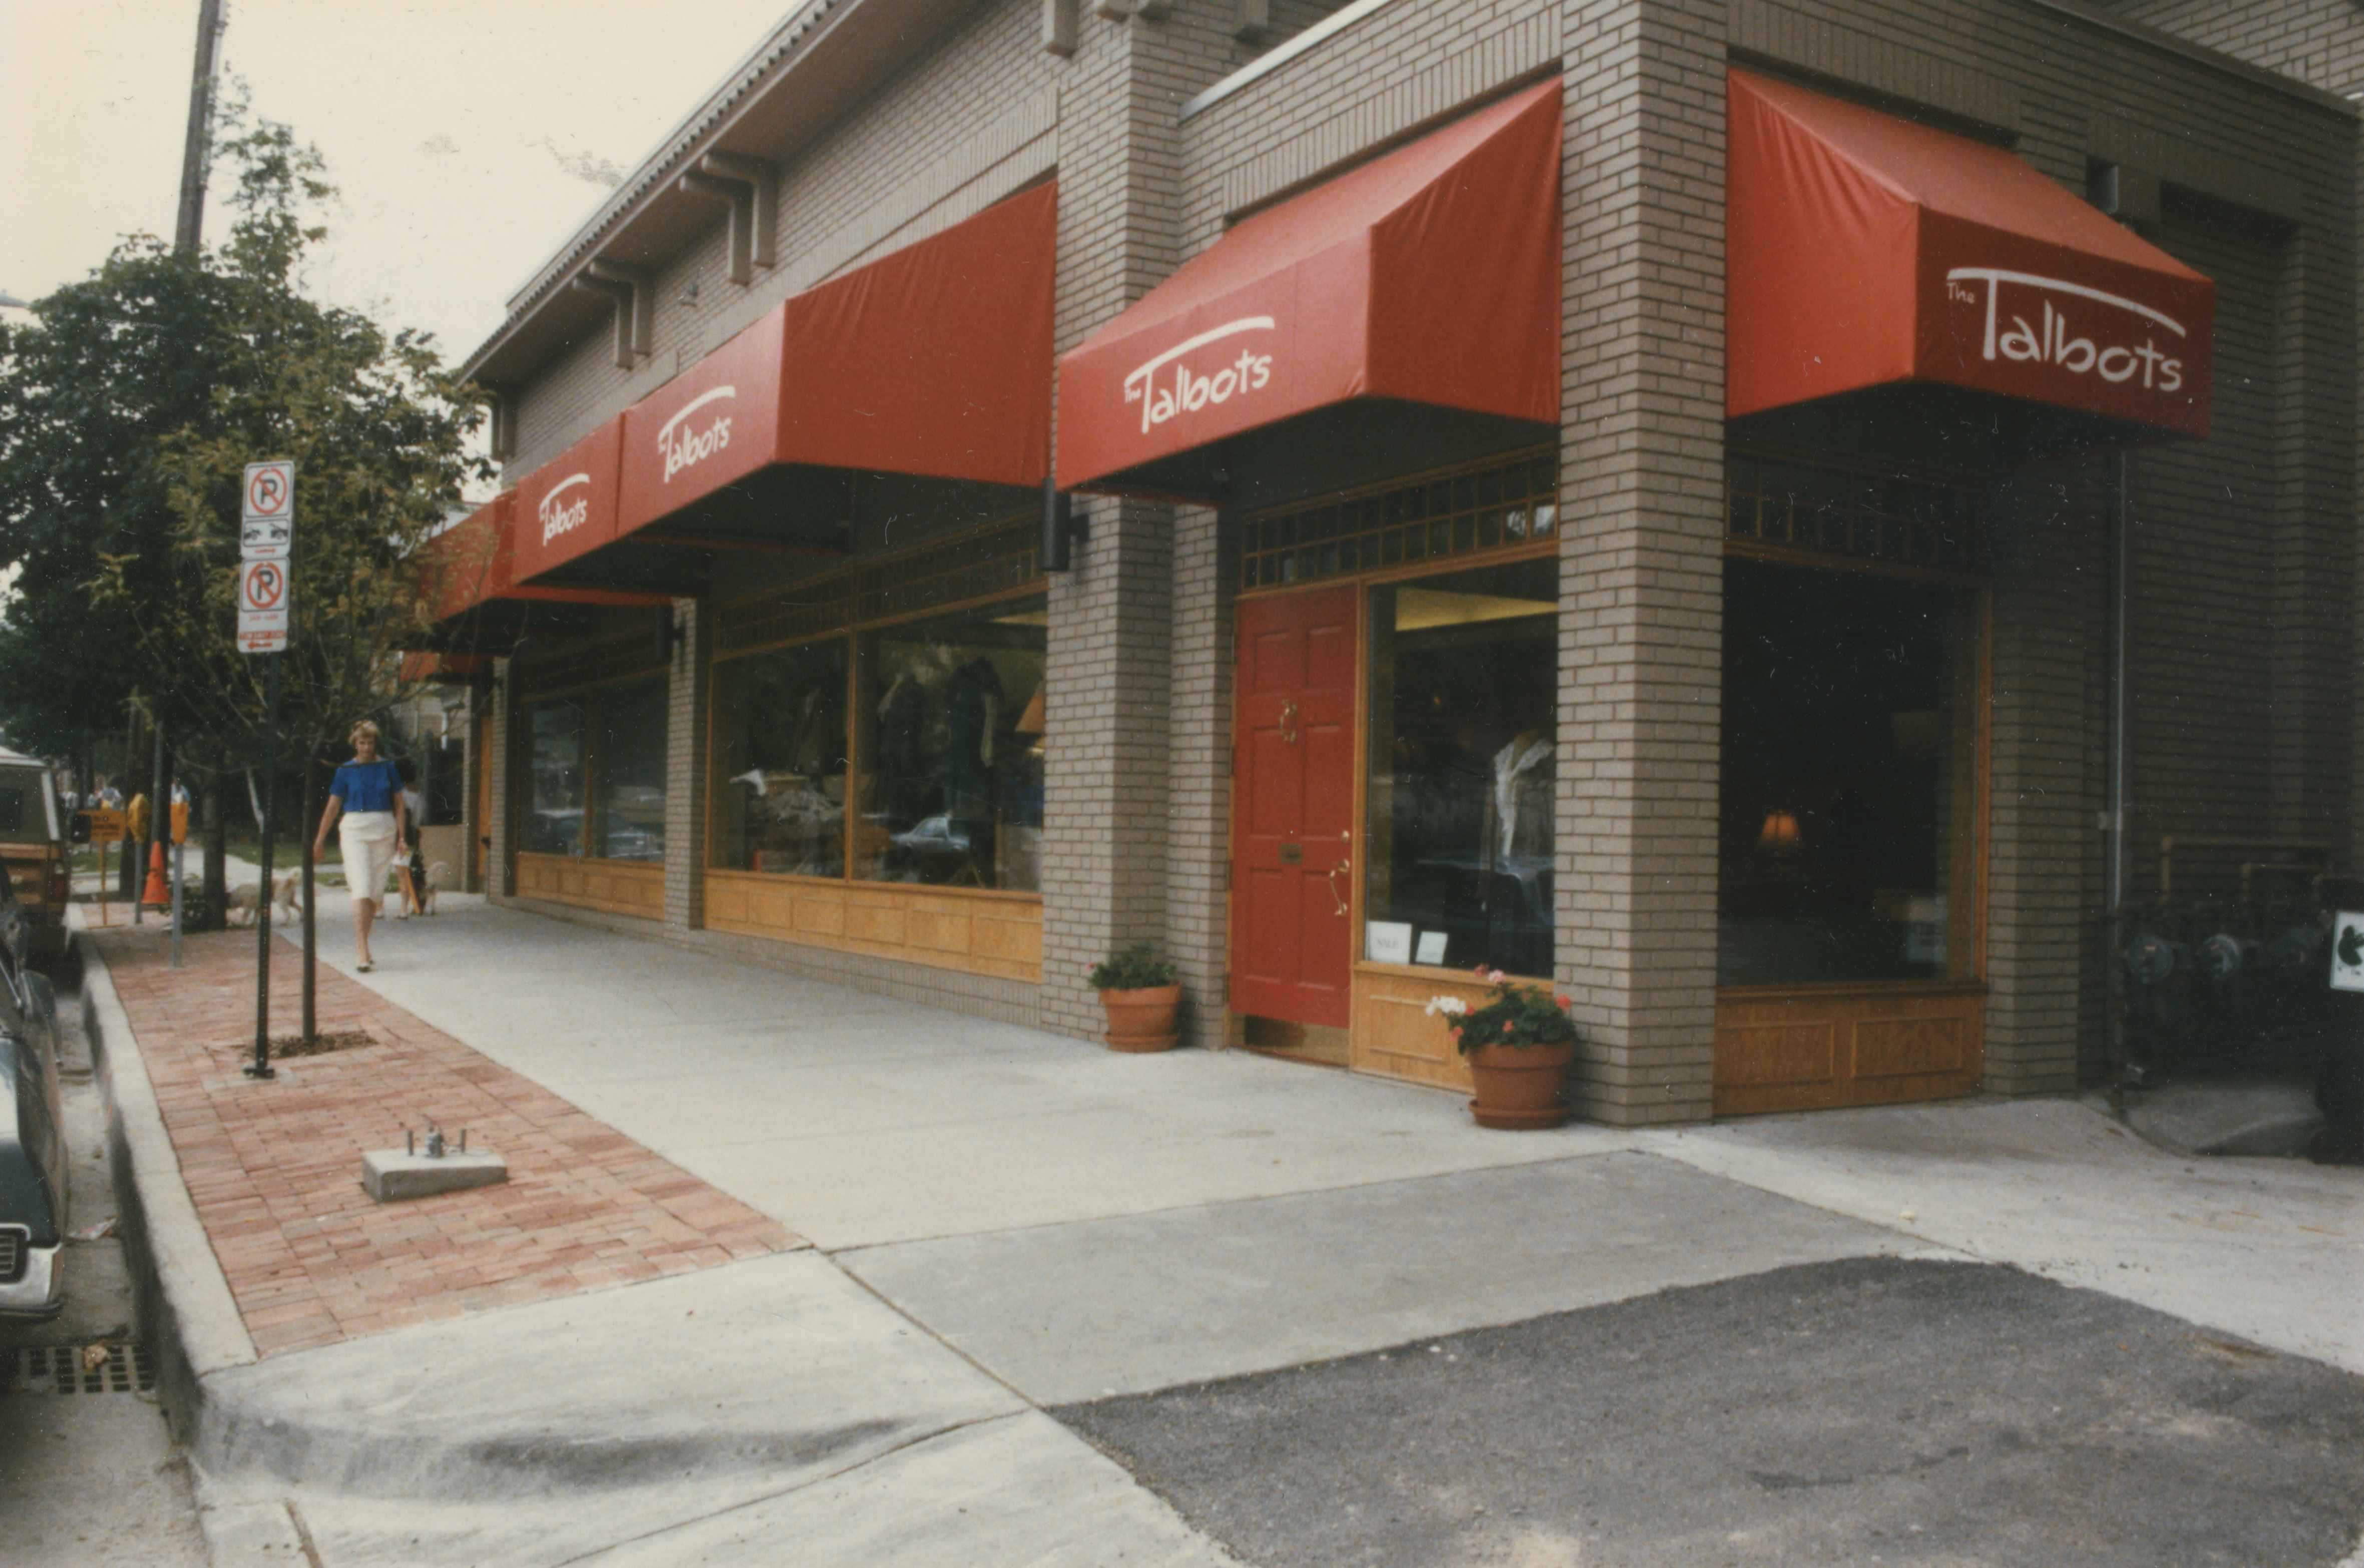 Talbots (year unknown) image